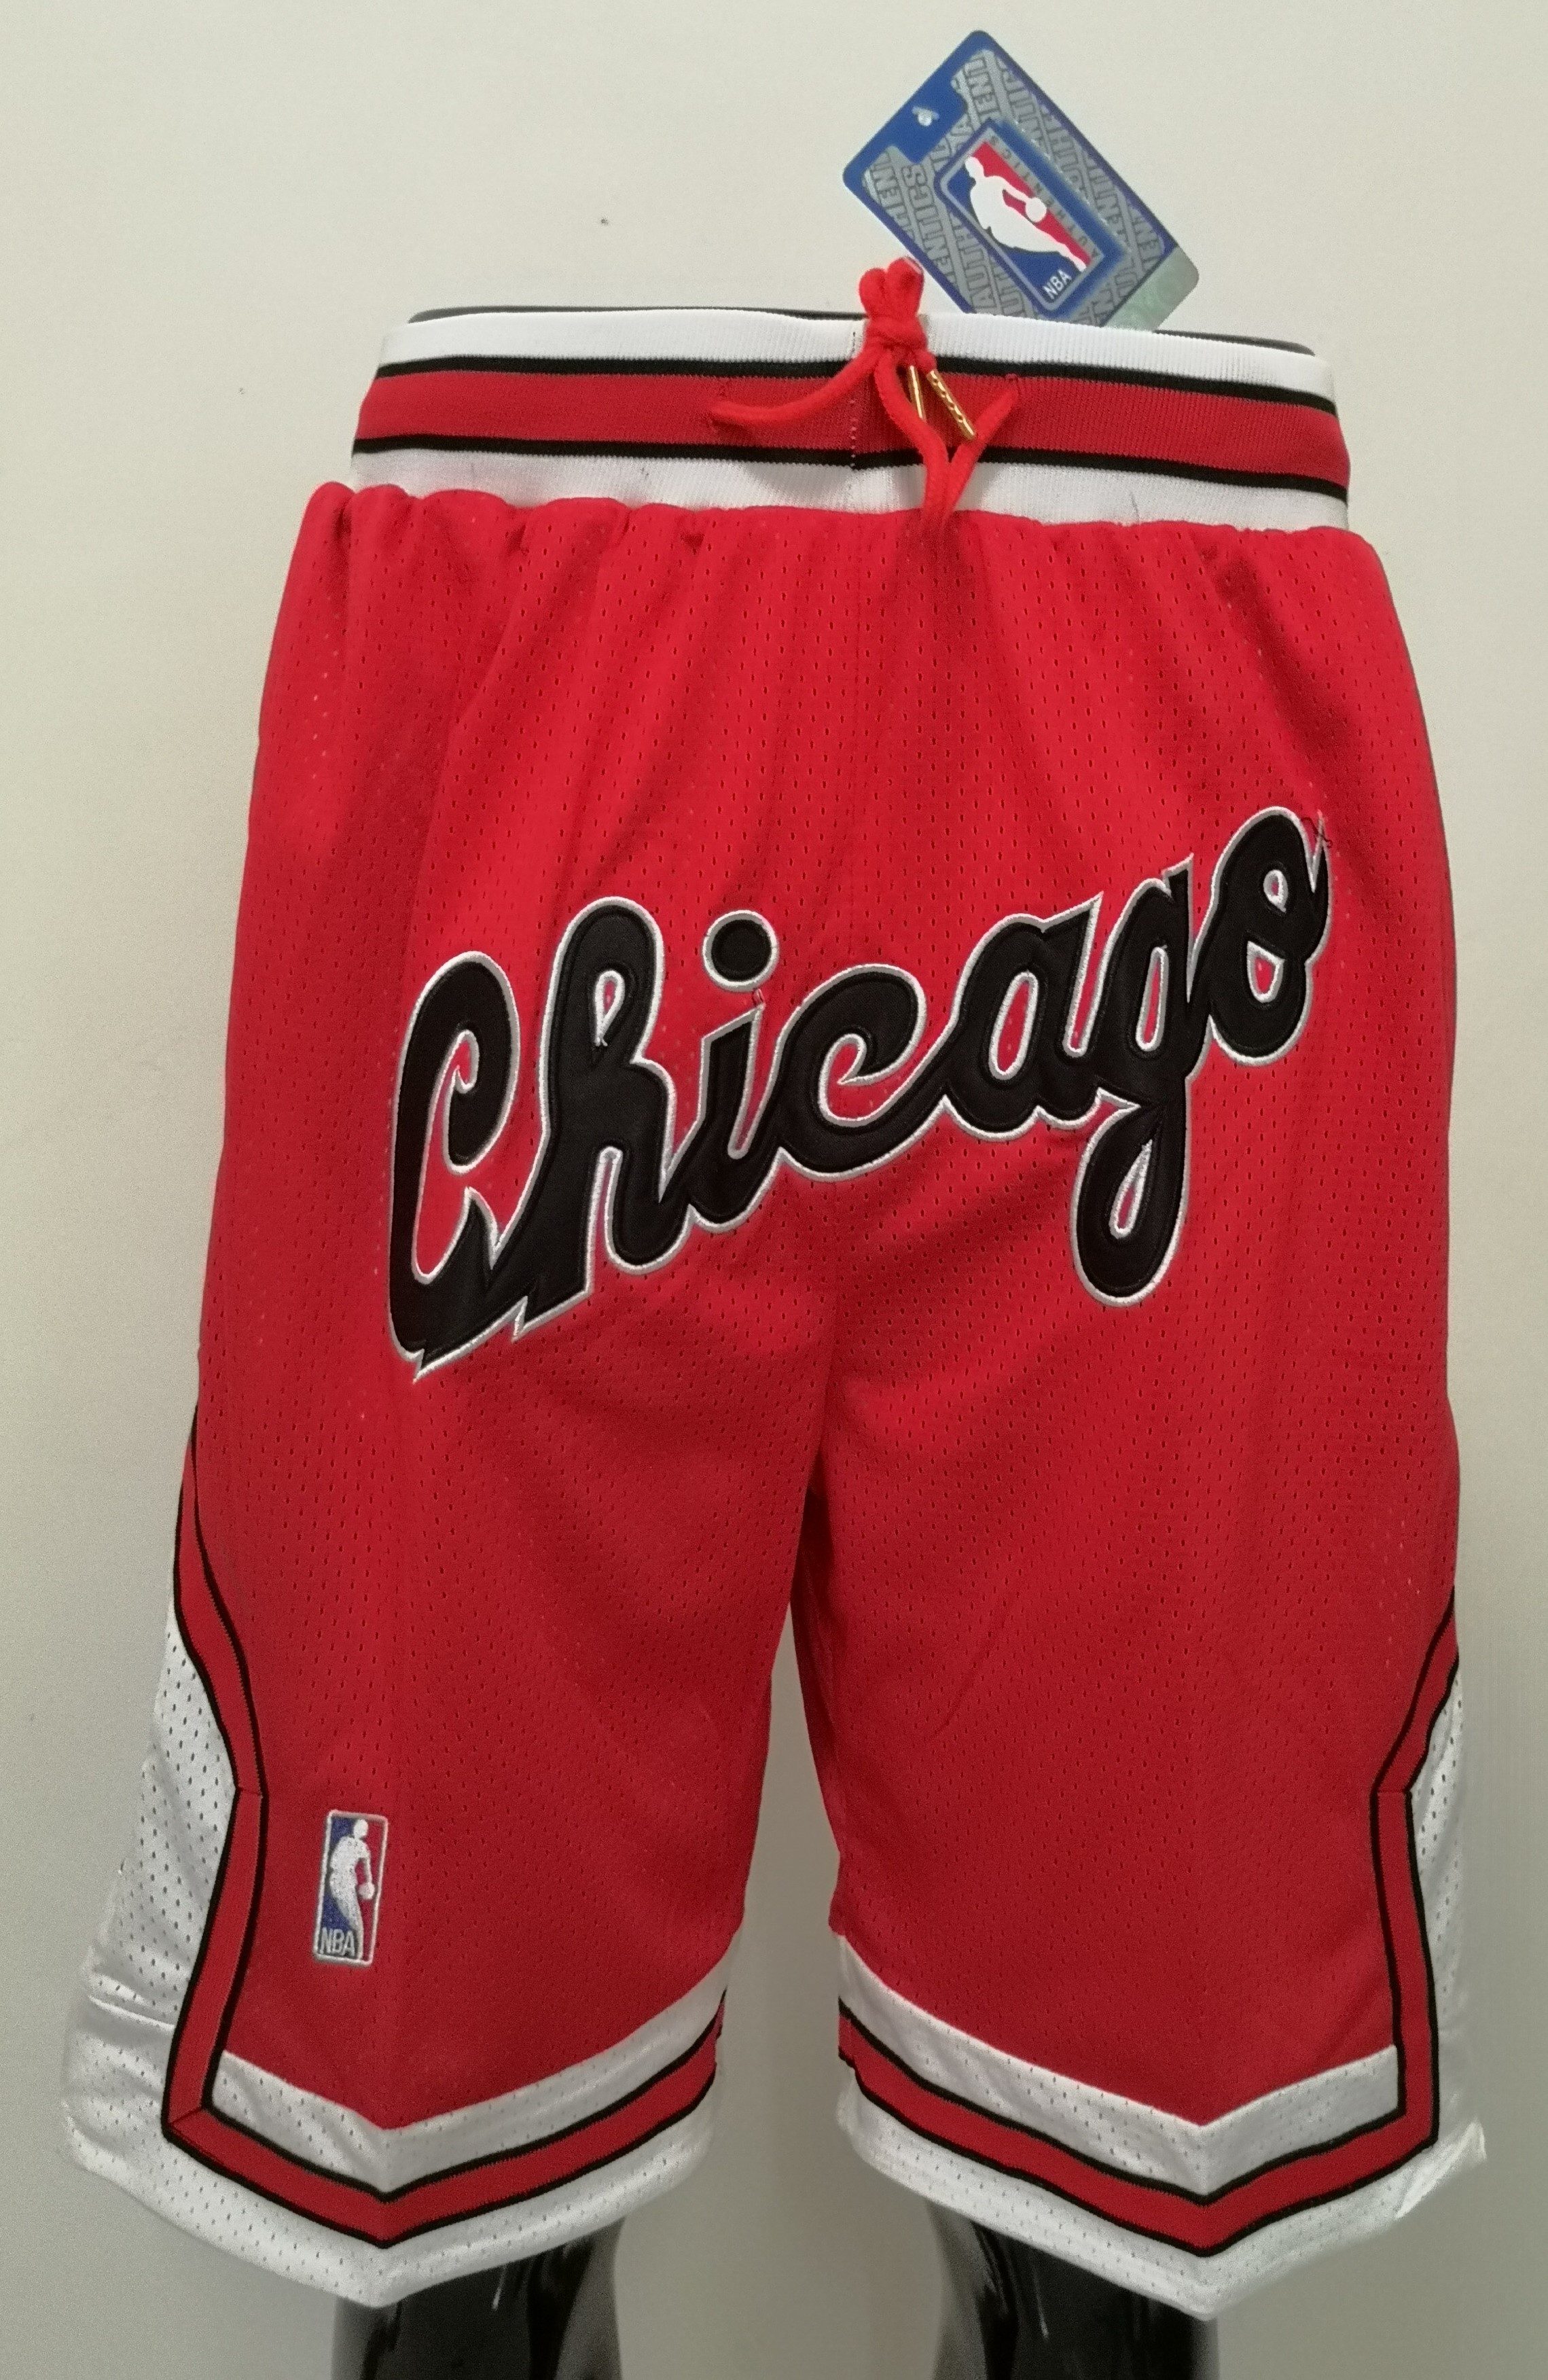 2020 Men NBA Chicago Bulls red shorts